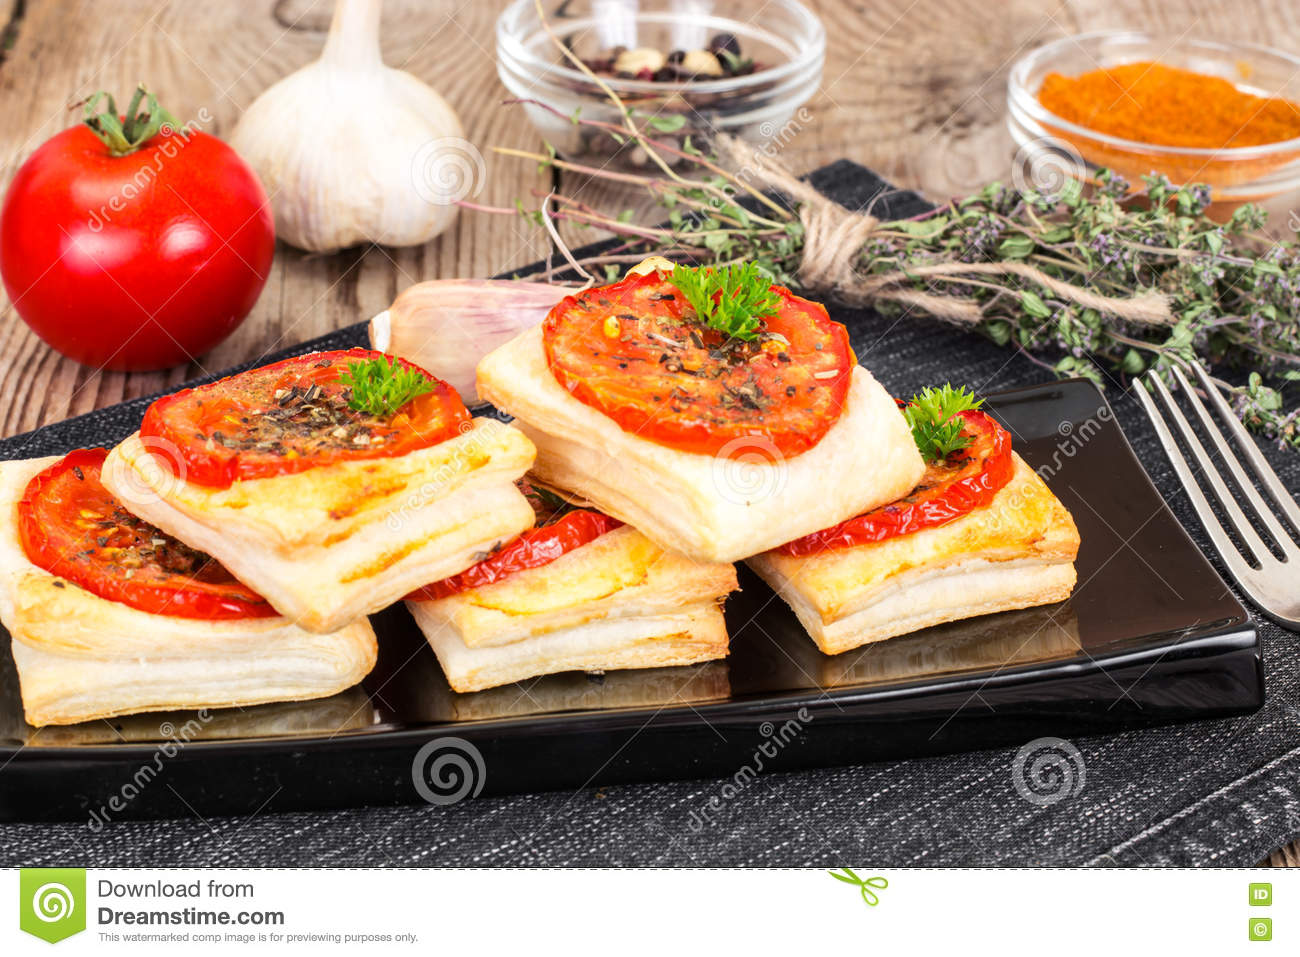 Mini Cuisine Studio Mini Pizzas Pies With Tomato And Oregano Stock Image Image Of